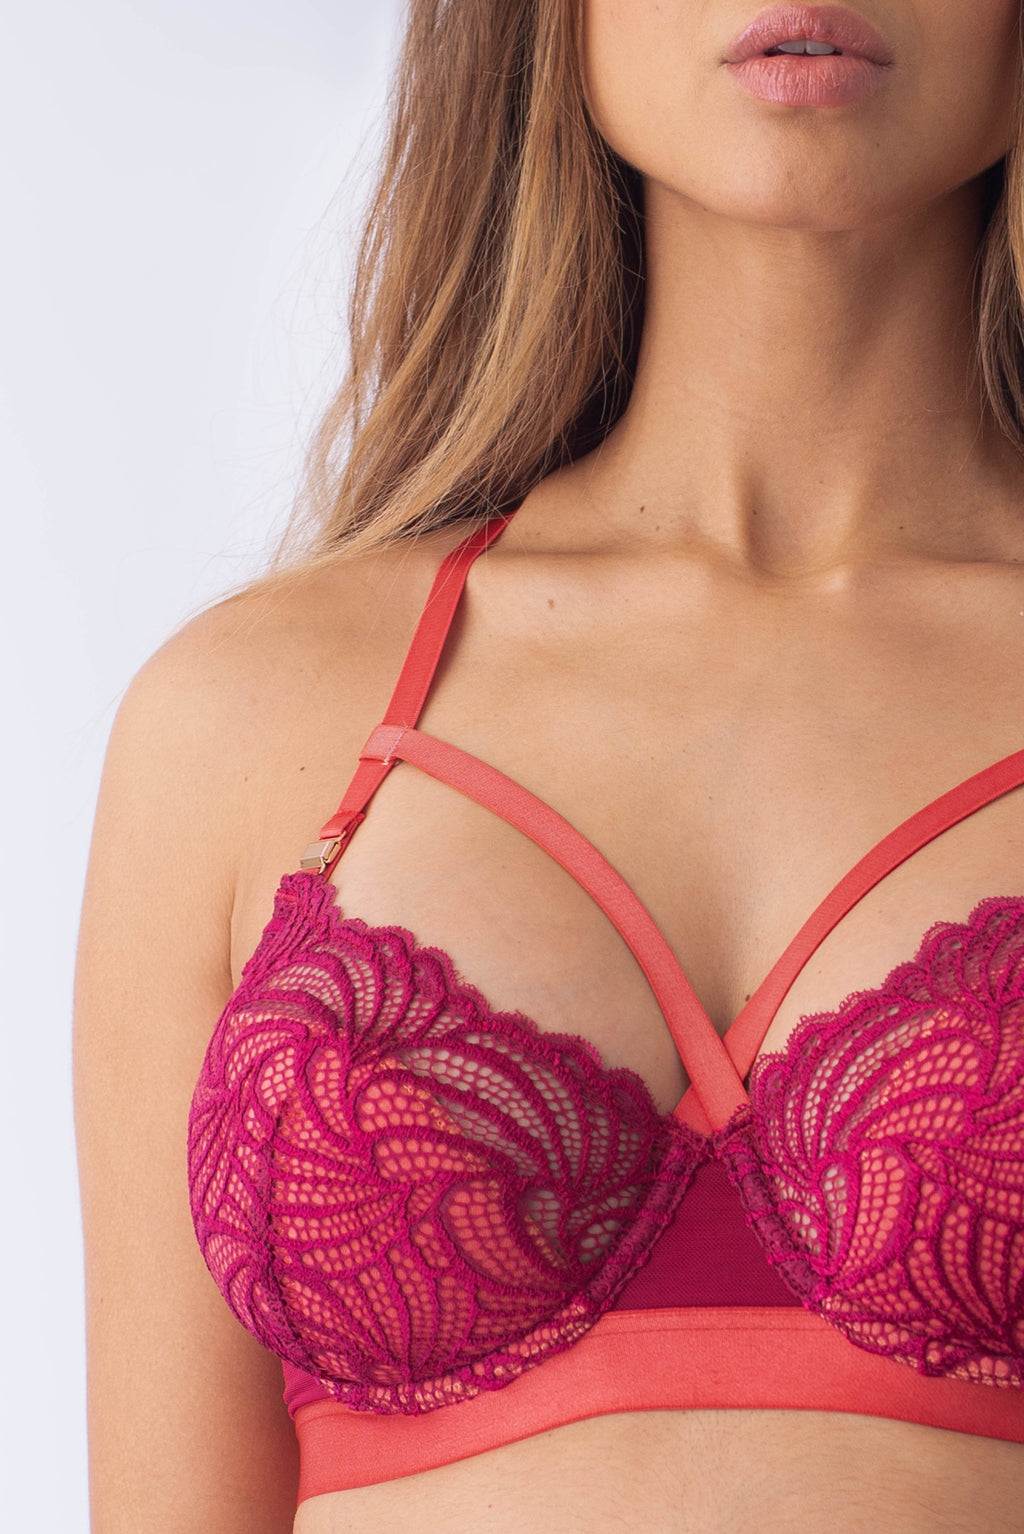 HOTMILK PROJECTME WARRIOR BALCONETTE SANGRIA CONTOUR NURSING BREASTFEEDING PREGNANCY BRA - FLEXI UNDERWIRE